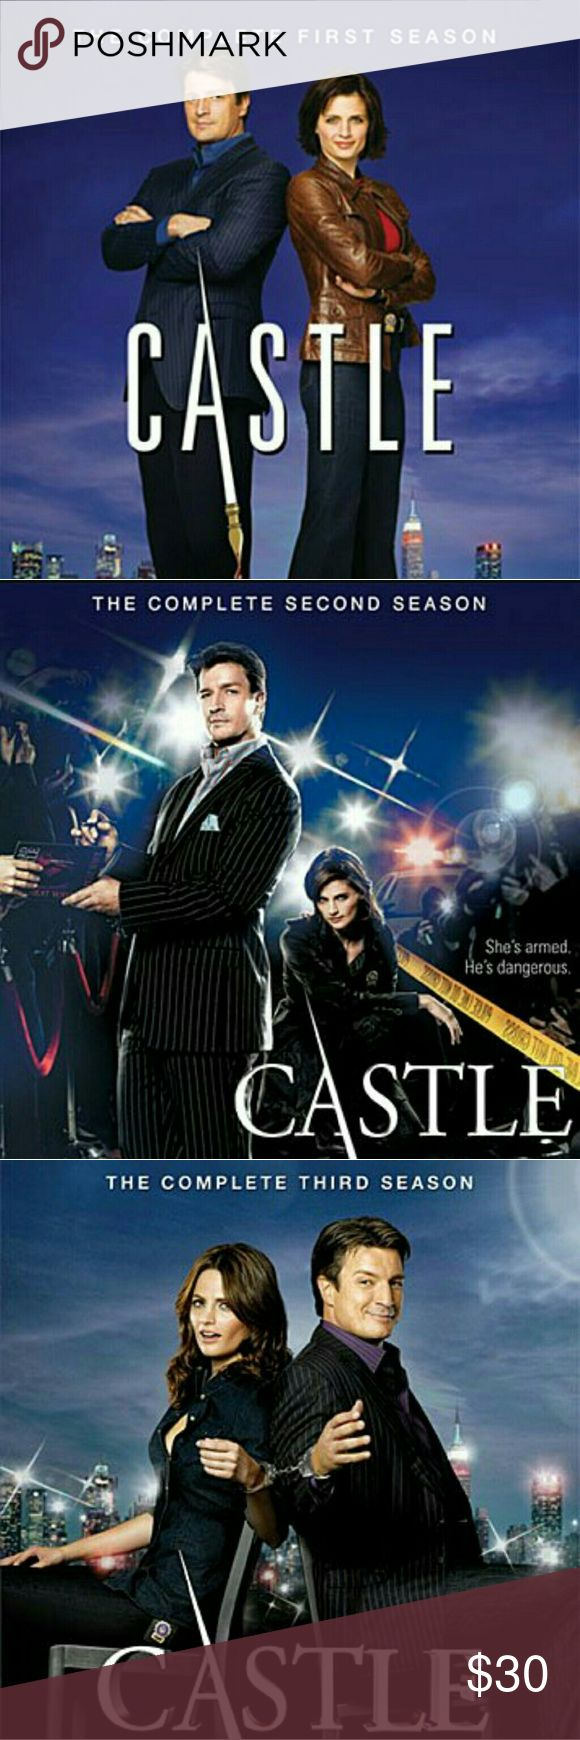 Seasons 1 - 3 of Castle on DVD Seasons 1 - 3 of Castle on DVD. Not in the original case, no case label or pamphlet. Not burned copies, like new DVDs, US region code. Other